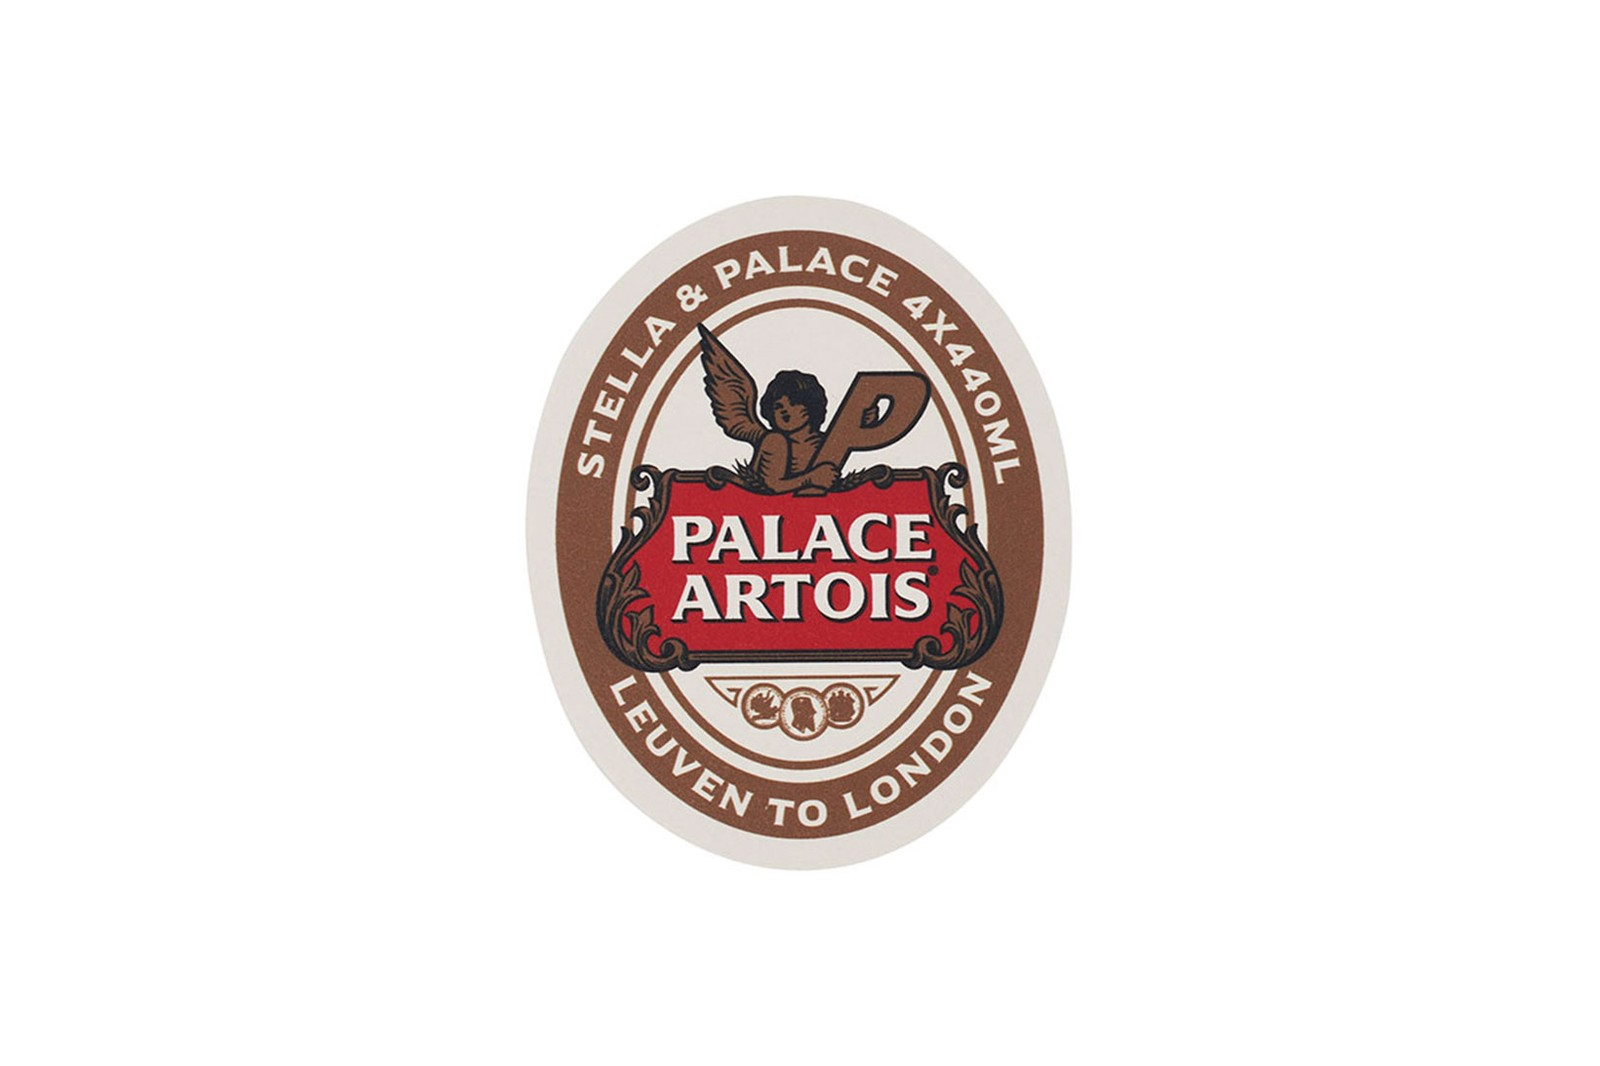 palace skateboards stella artois beer collaboration logo t-shirts hoodies home accessories release date info